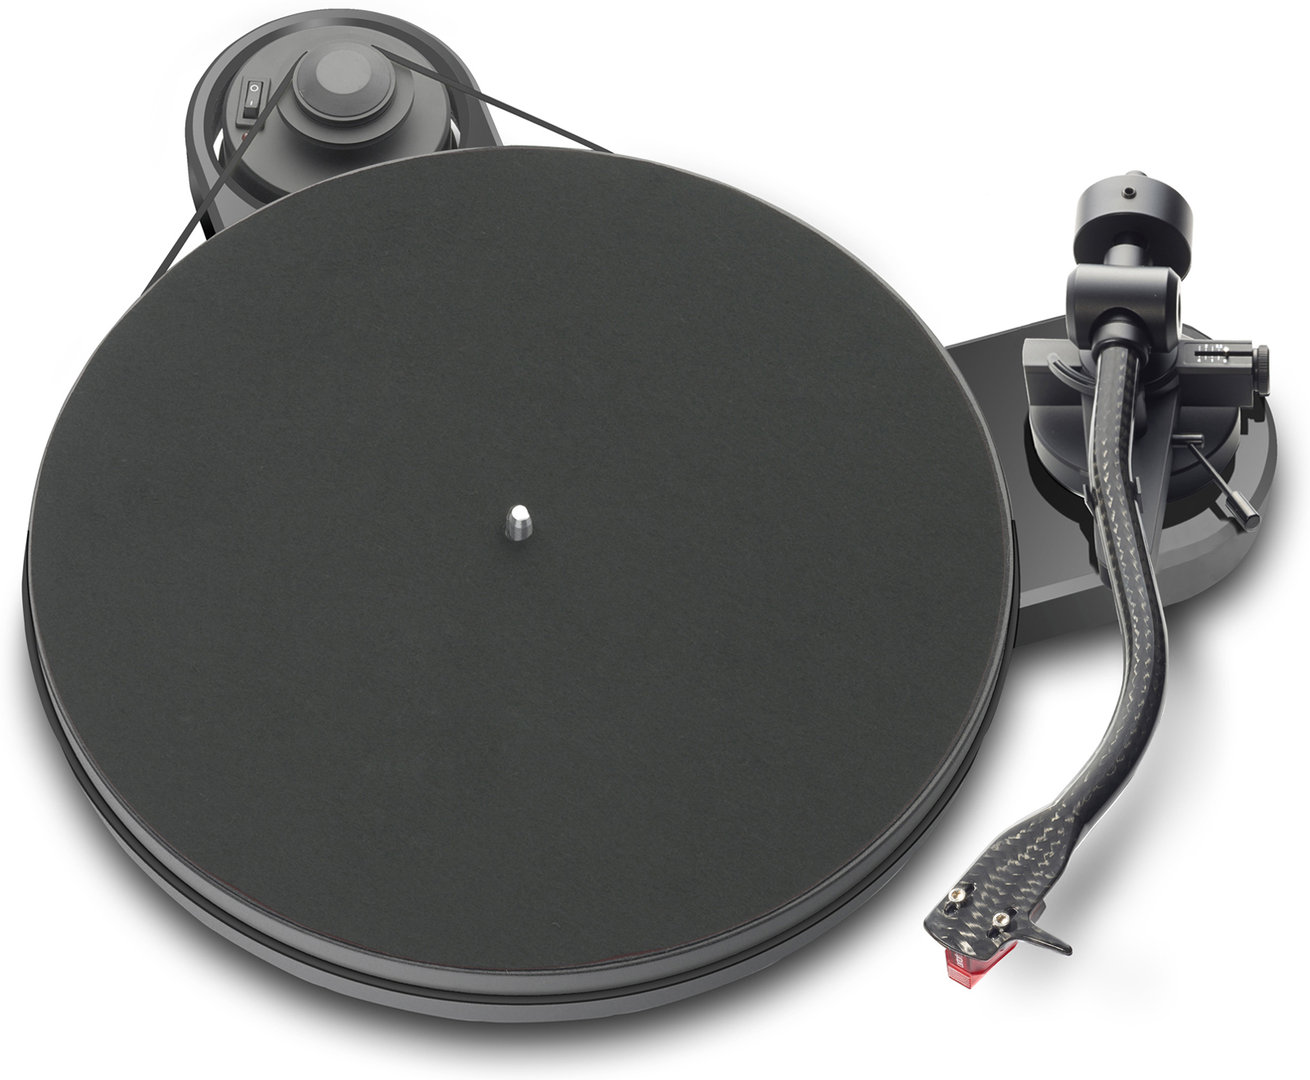 PRO-JECT RPM 1 CARBON turntable - black | Ortofon 2M Red